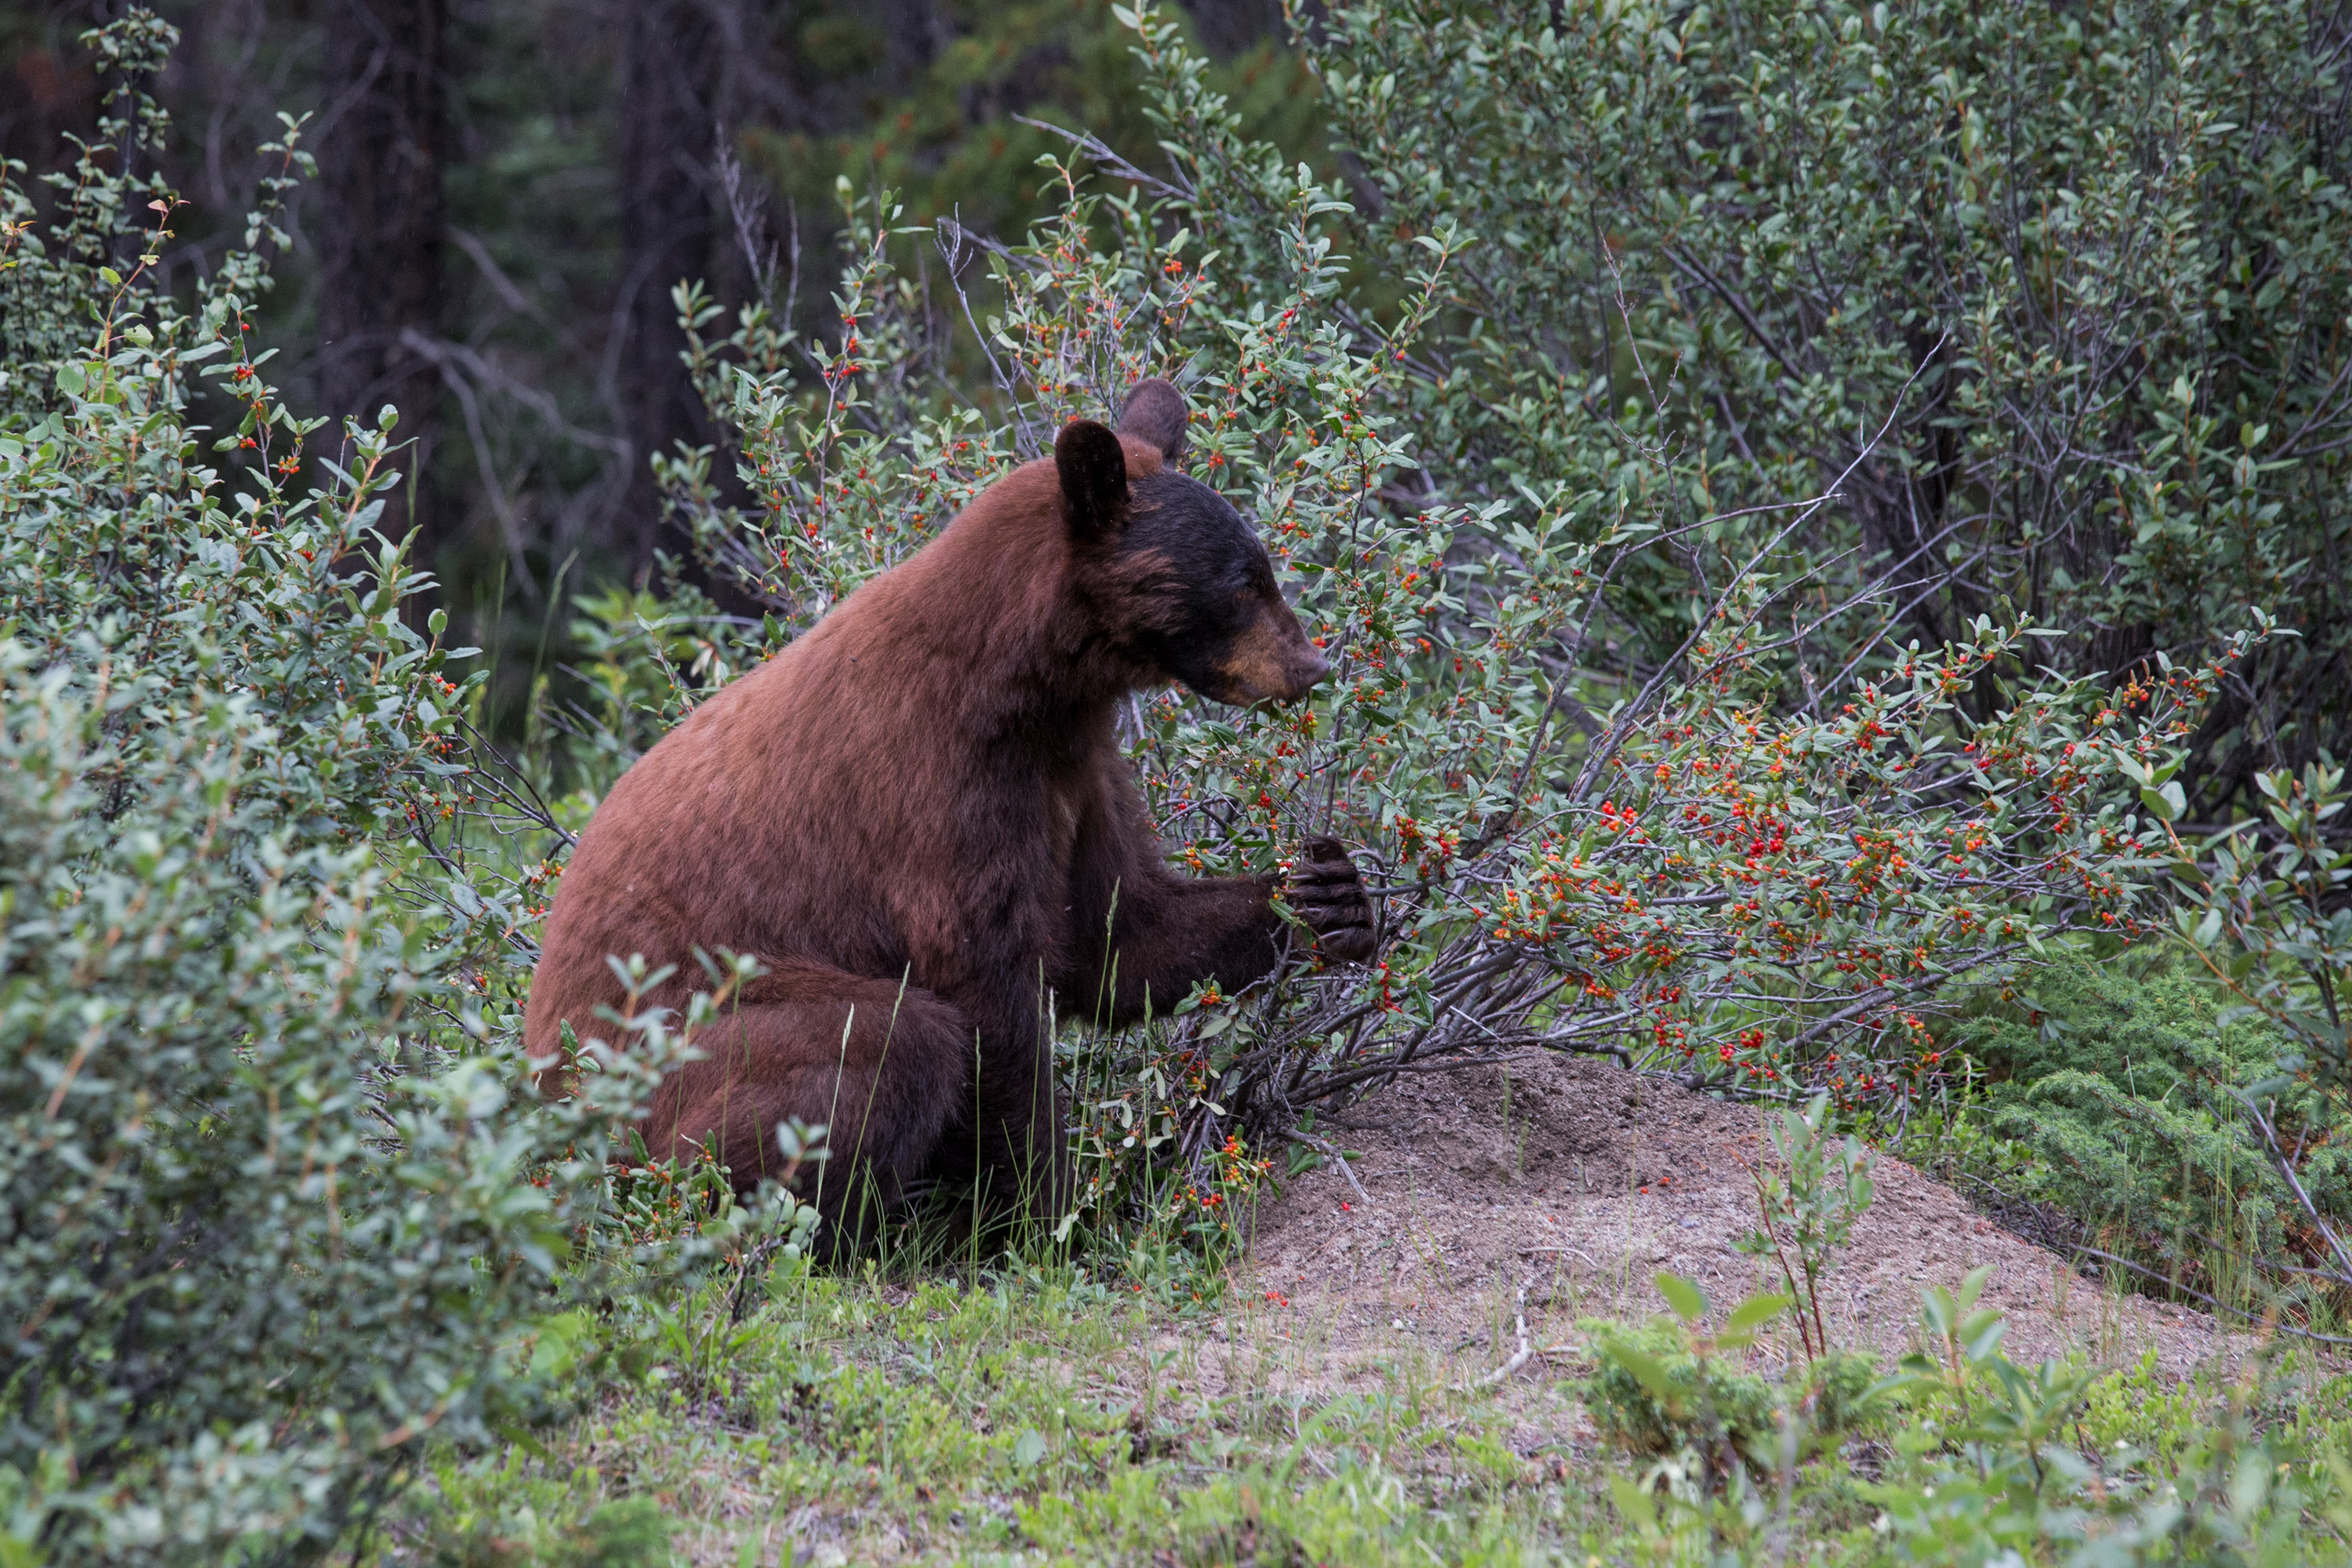 Beary Good - a bear eating some berries.